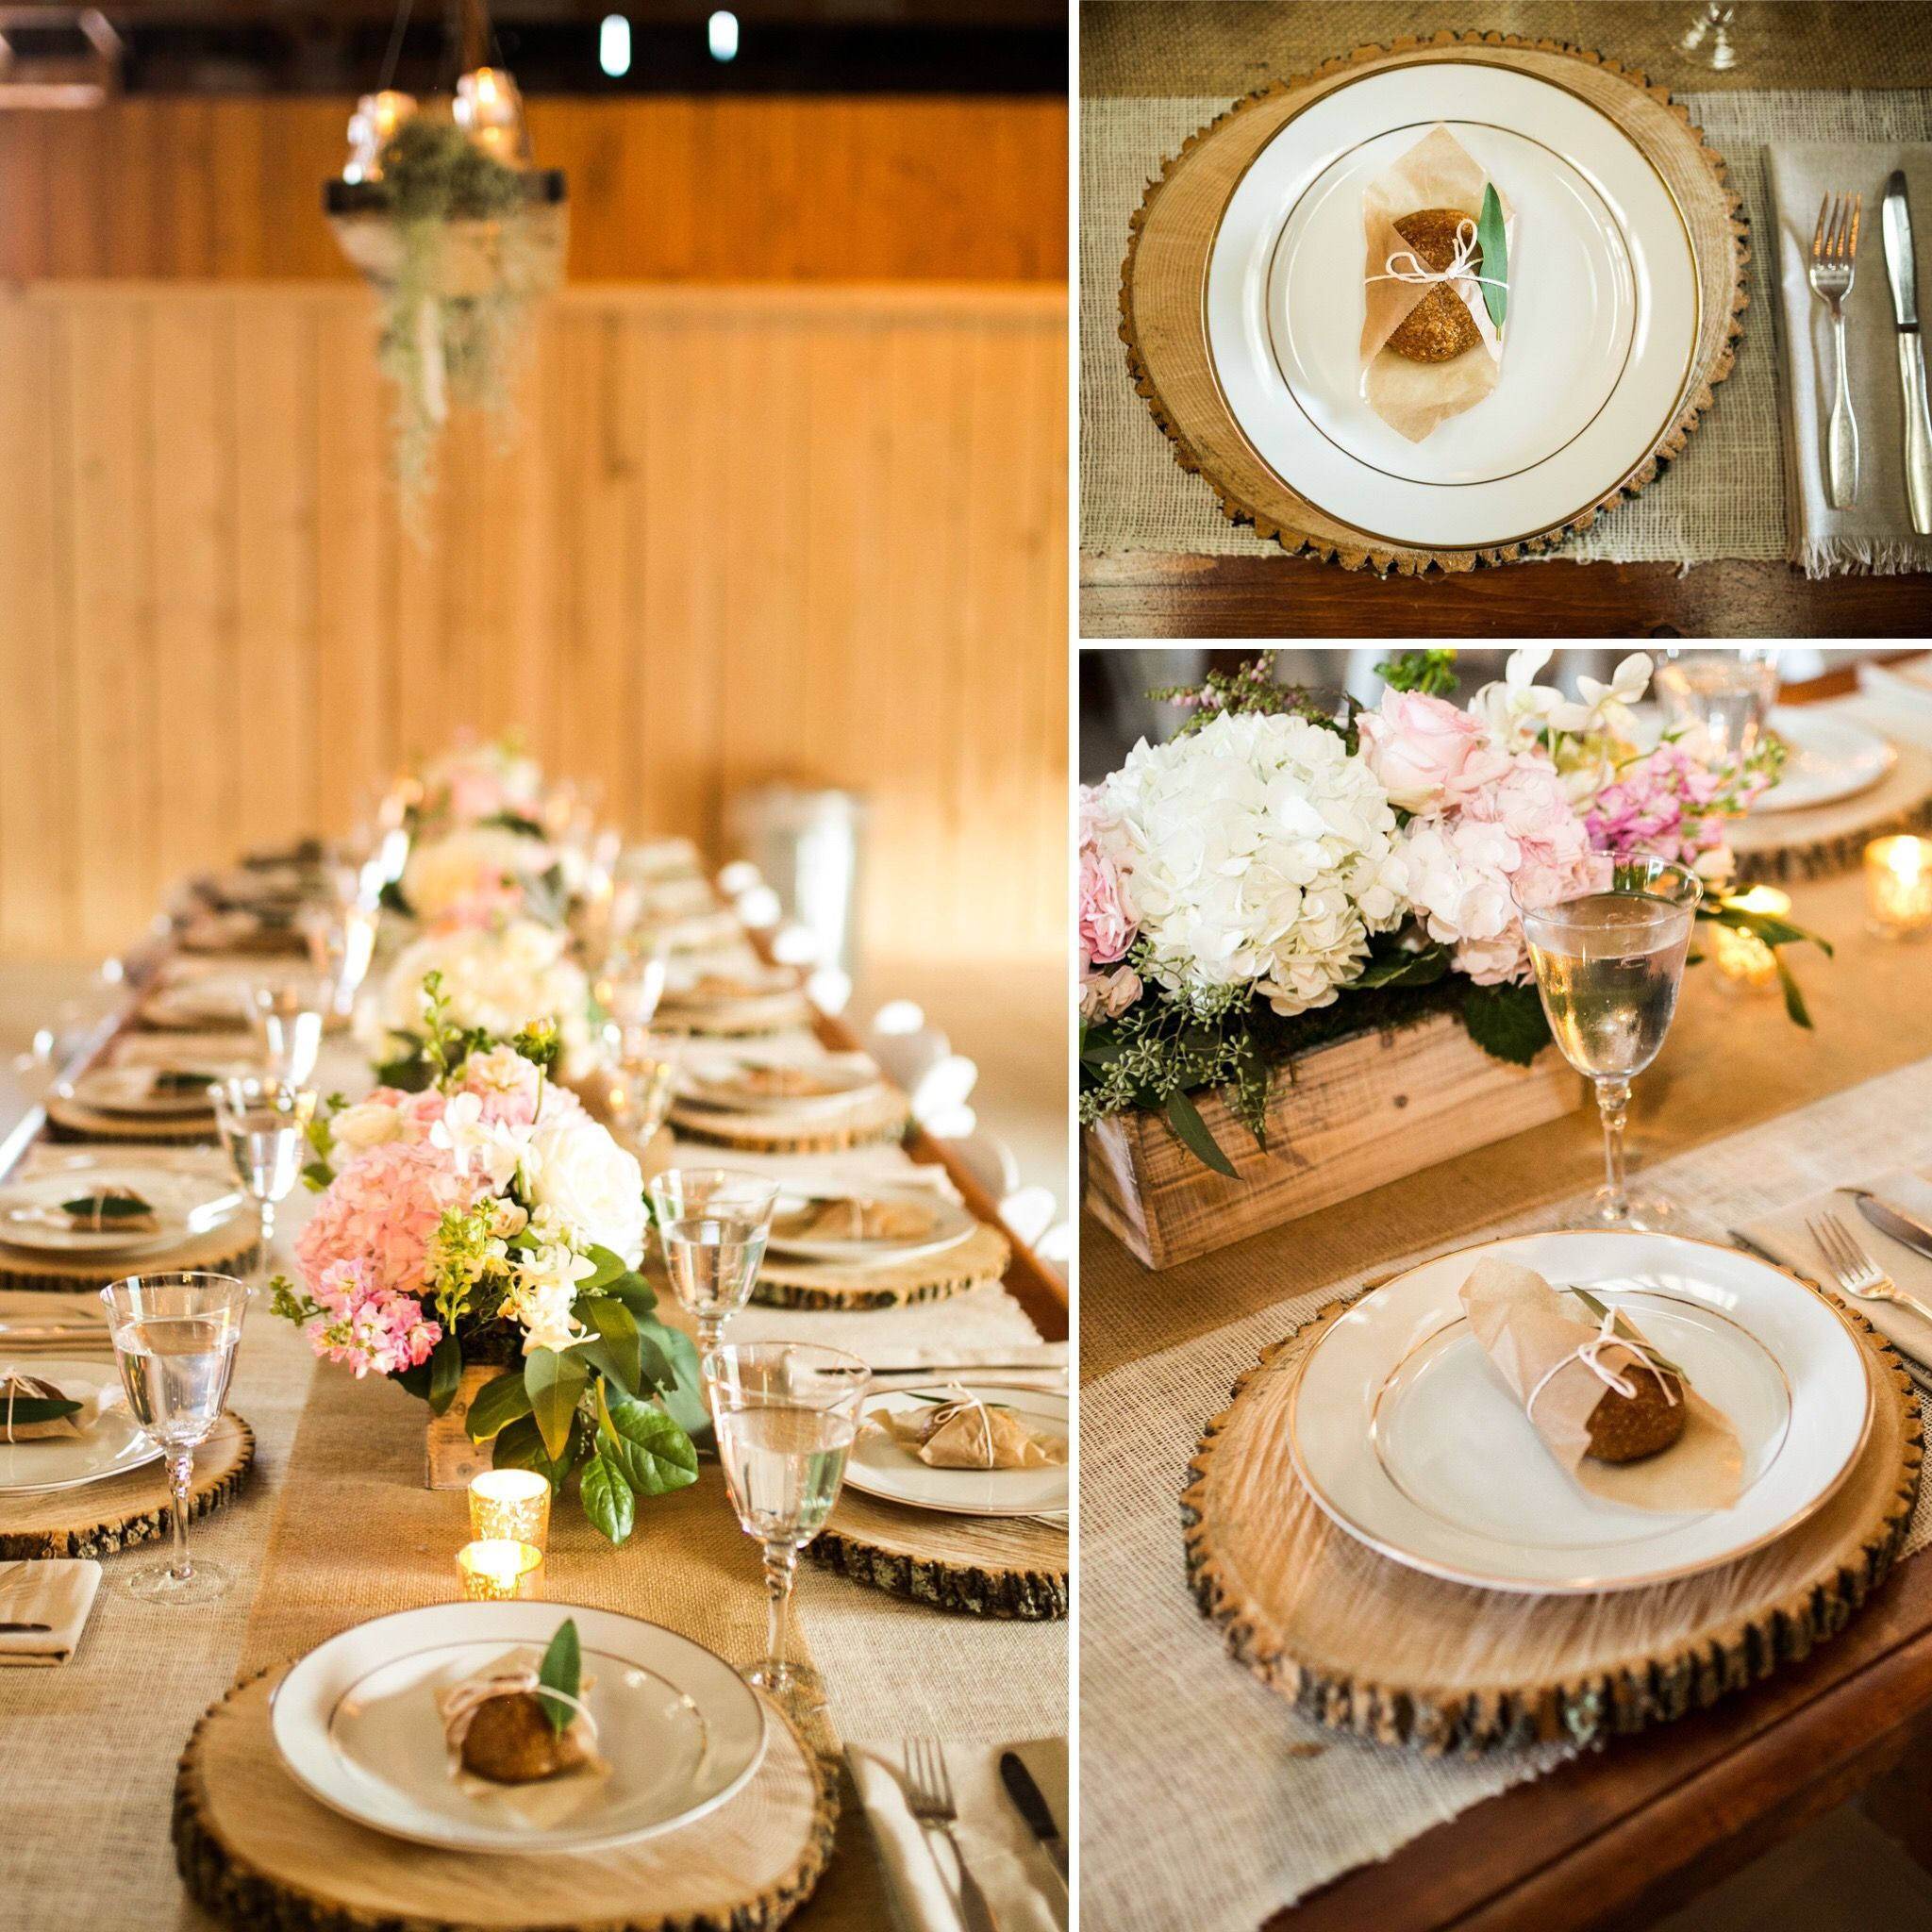 Wood Chargers Tablescape Guest Tables Wedding Decor Wedding Centerpieces Cullen Creations Rentals Rustic Wedding Decorations Wedding Plates Yard Wedding